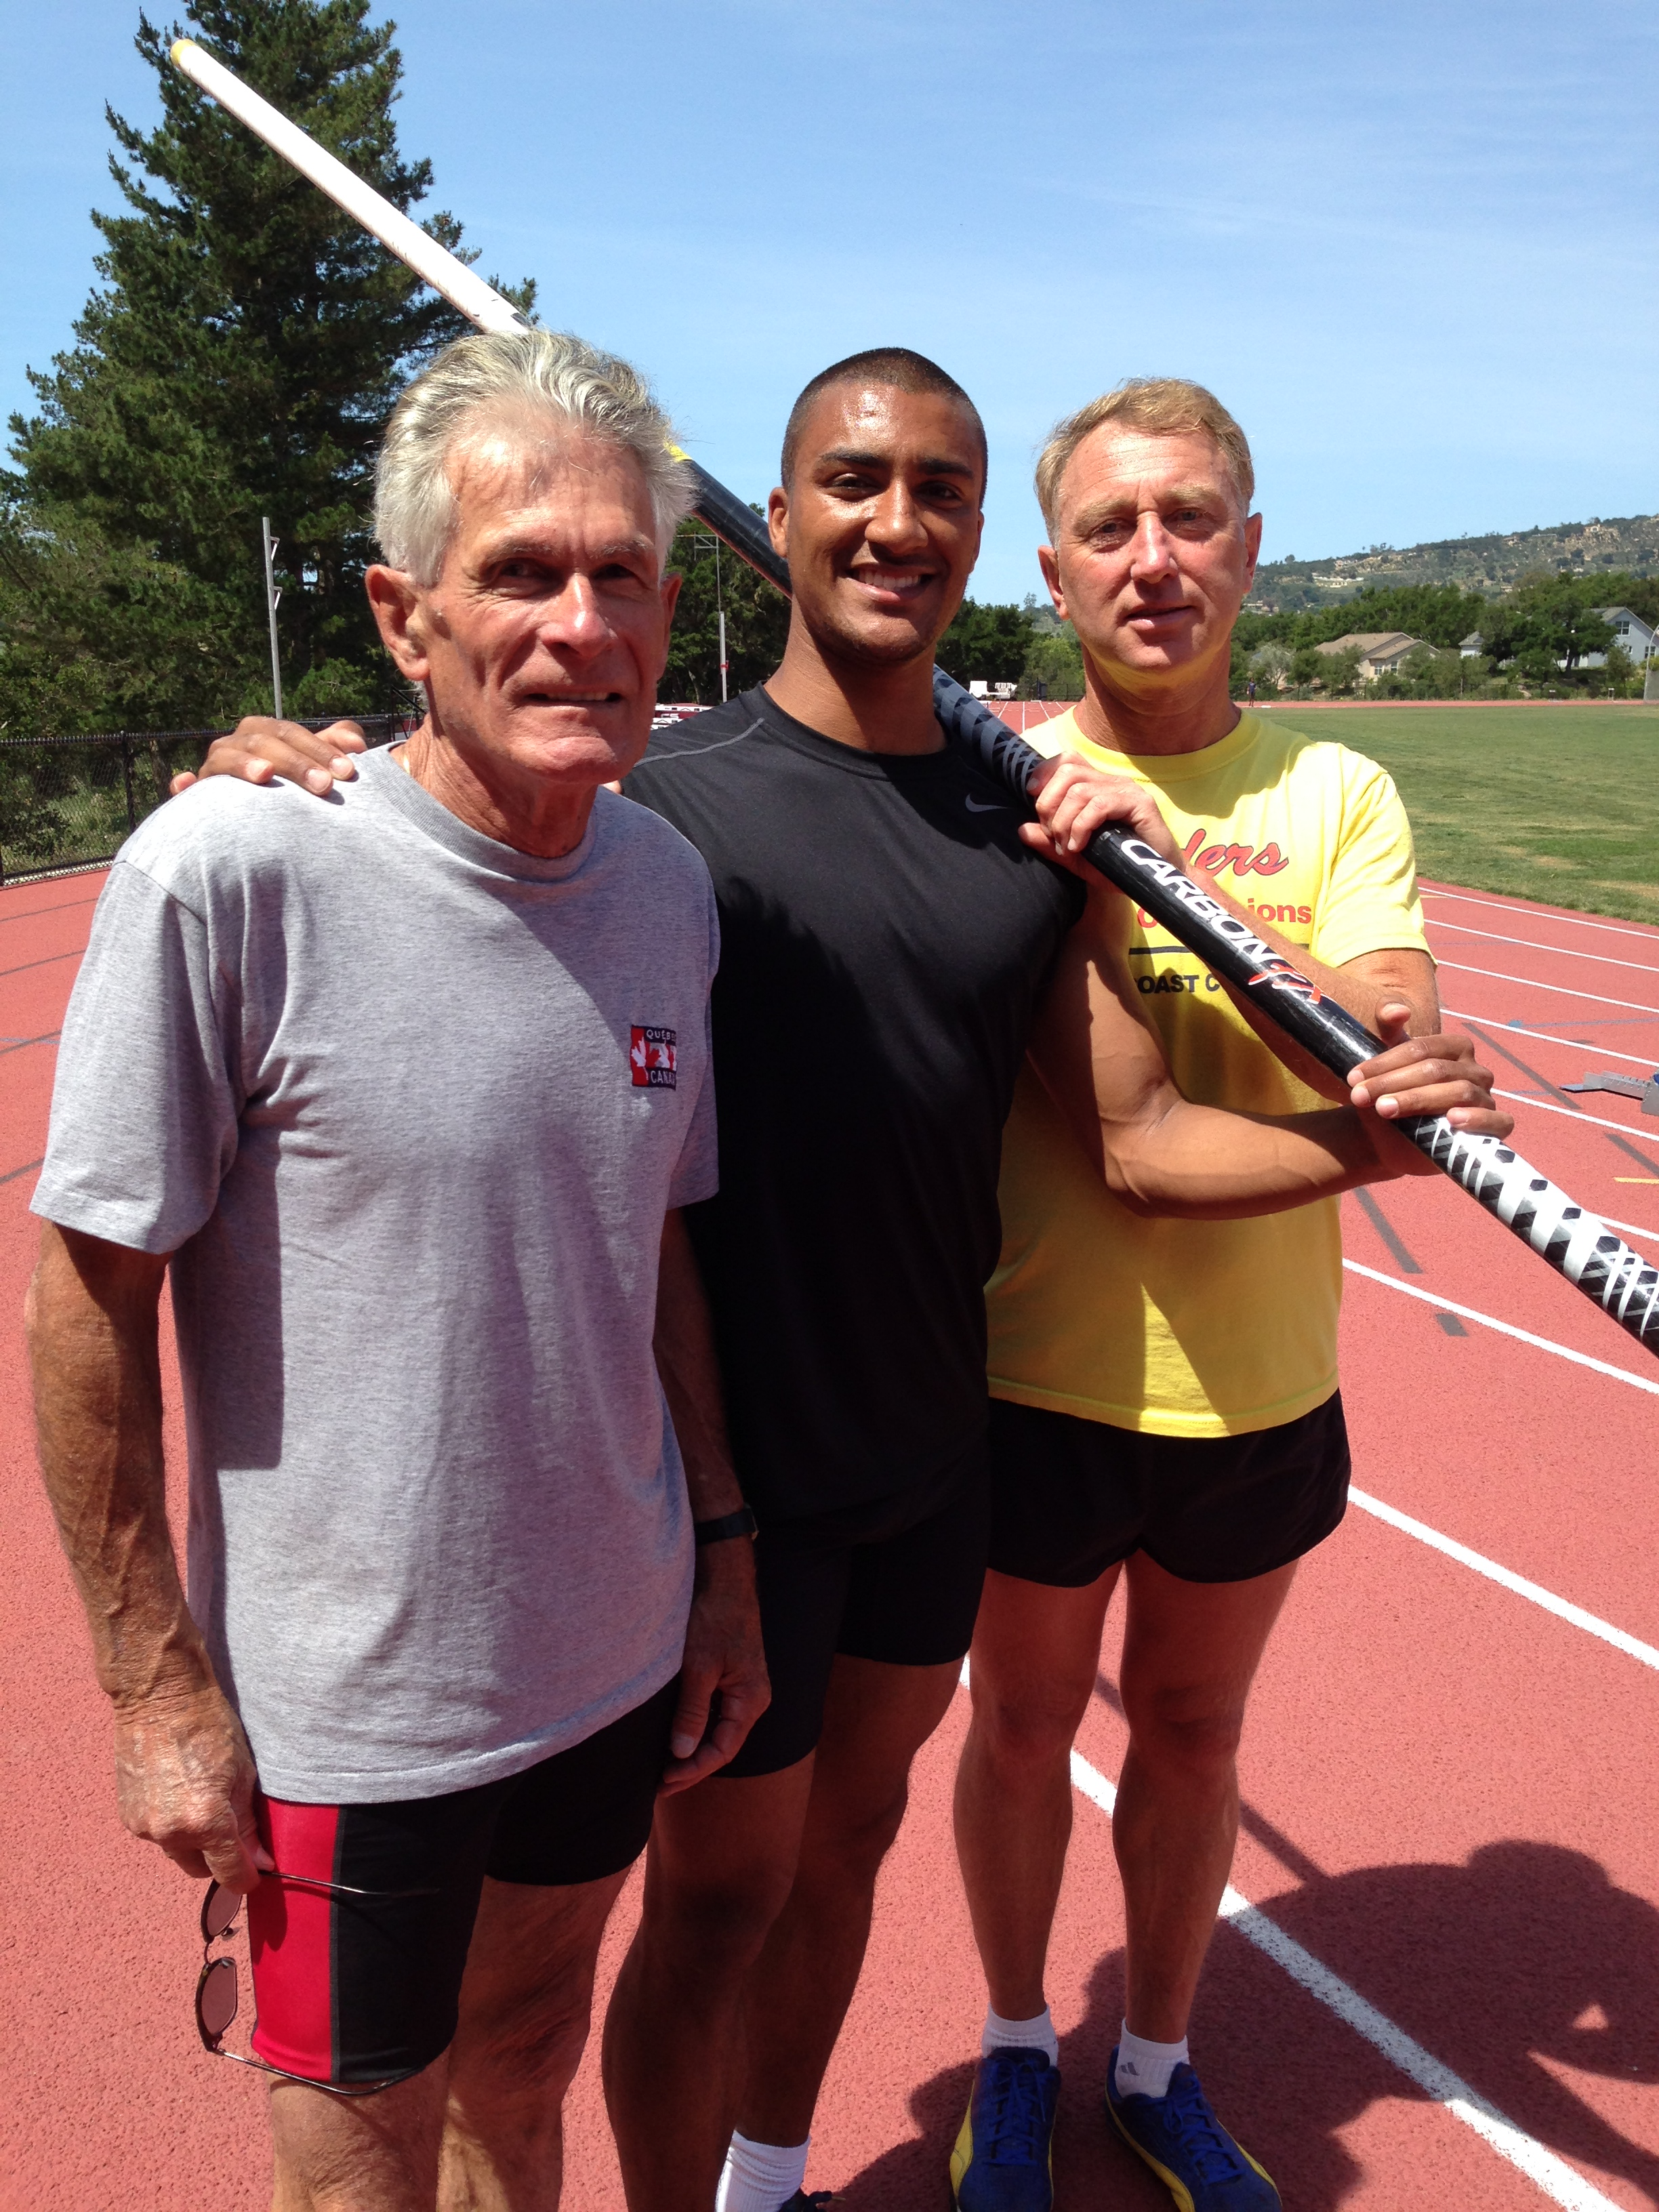 Tom Woodring, 77, left, and Victor Berezovskiy, 54, right, with Ashton Eaton